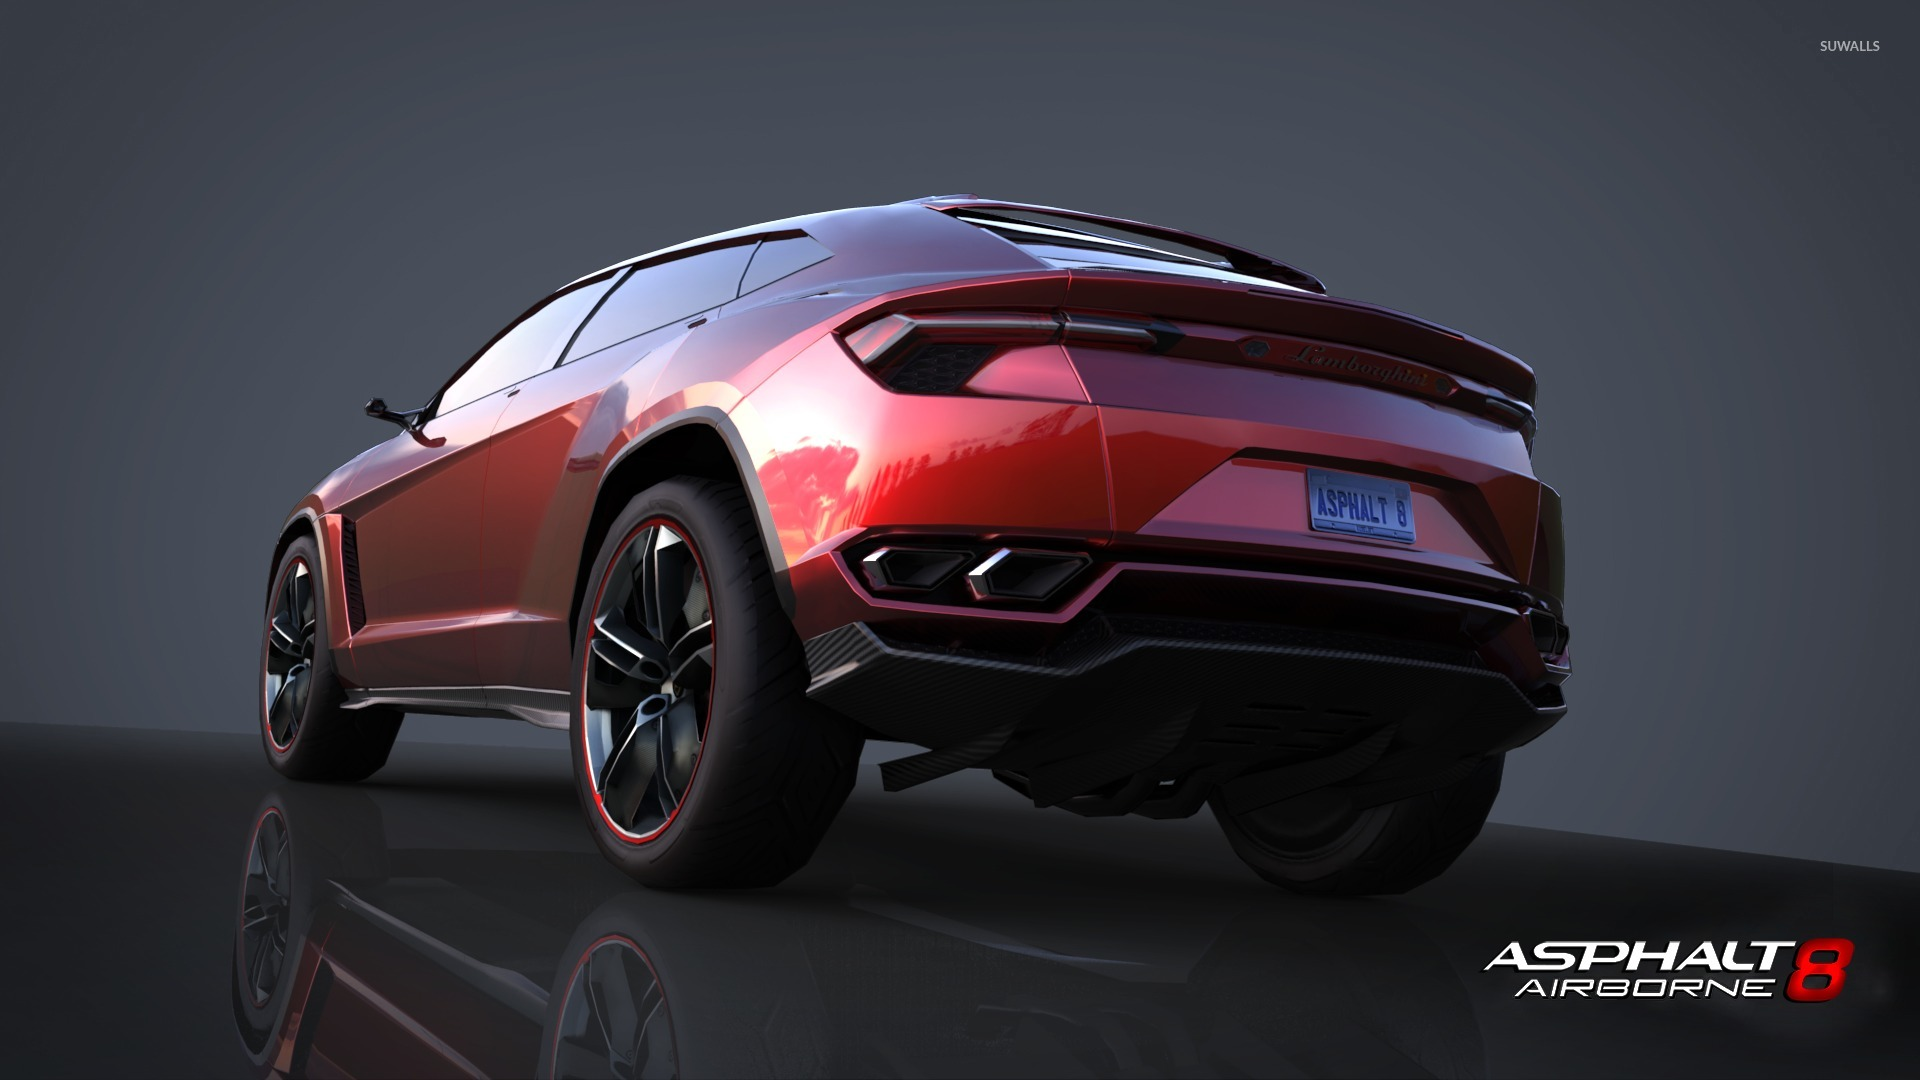 lamborghini urus - asphalt 8: airborne wallpaper - game wallpapers